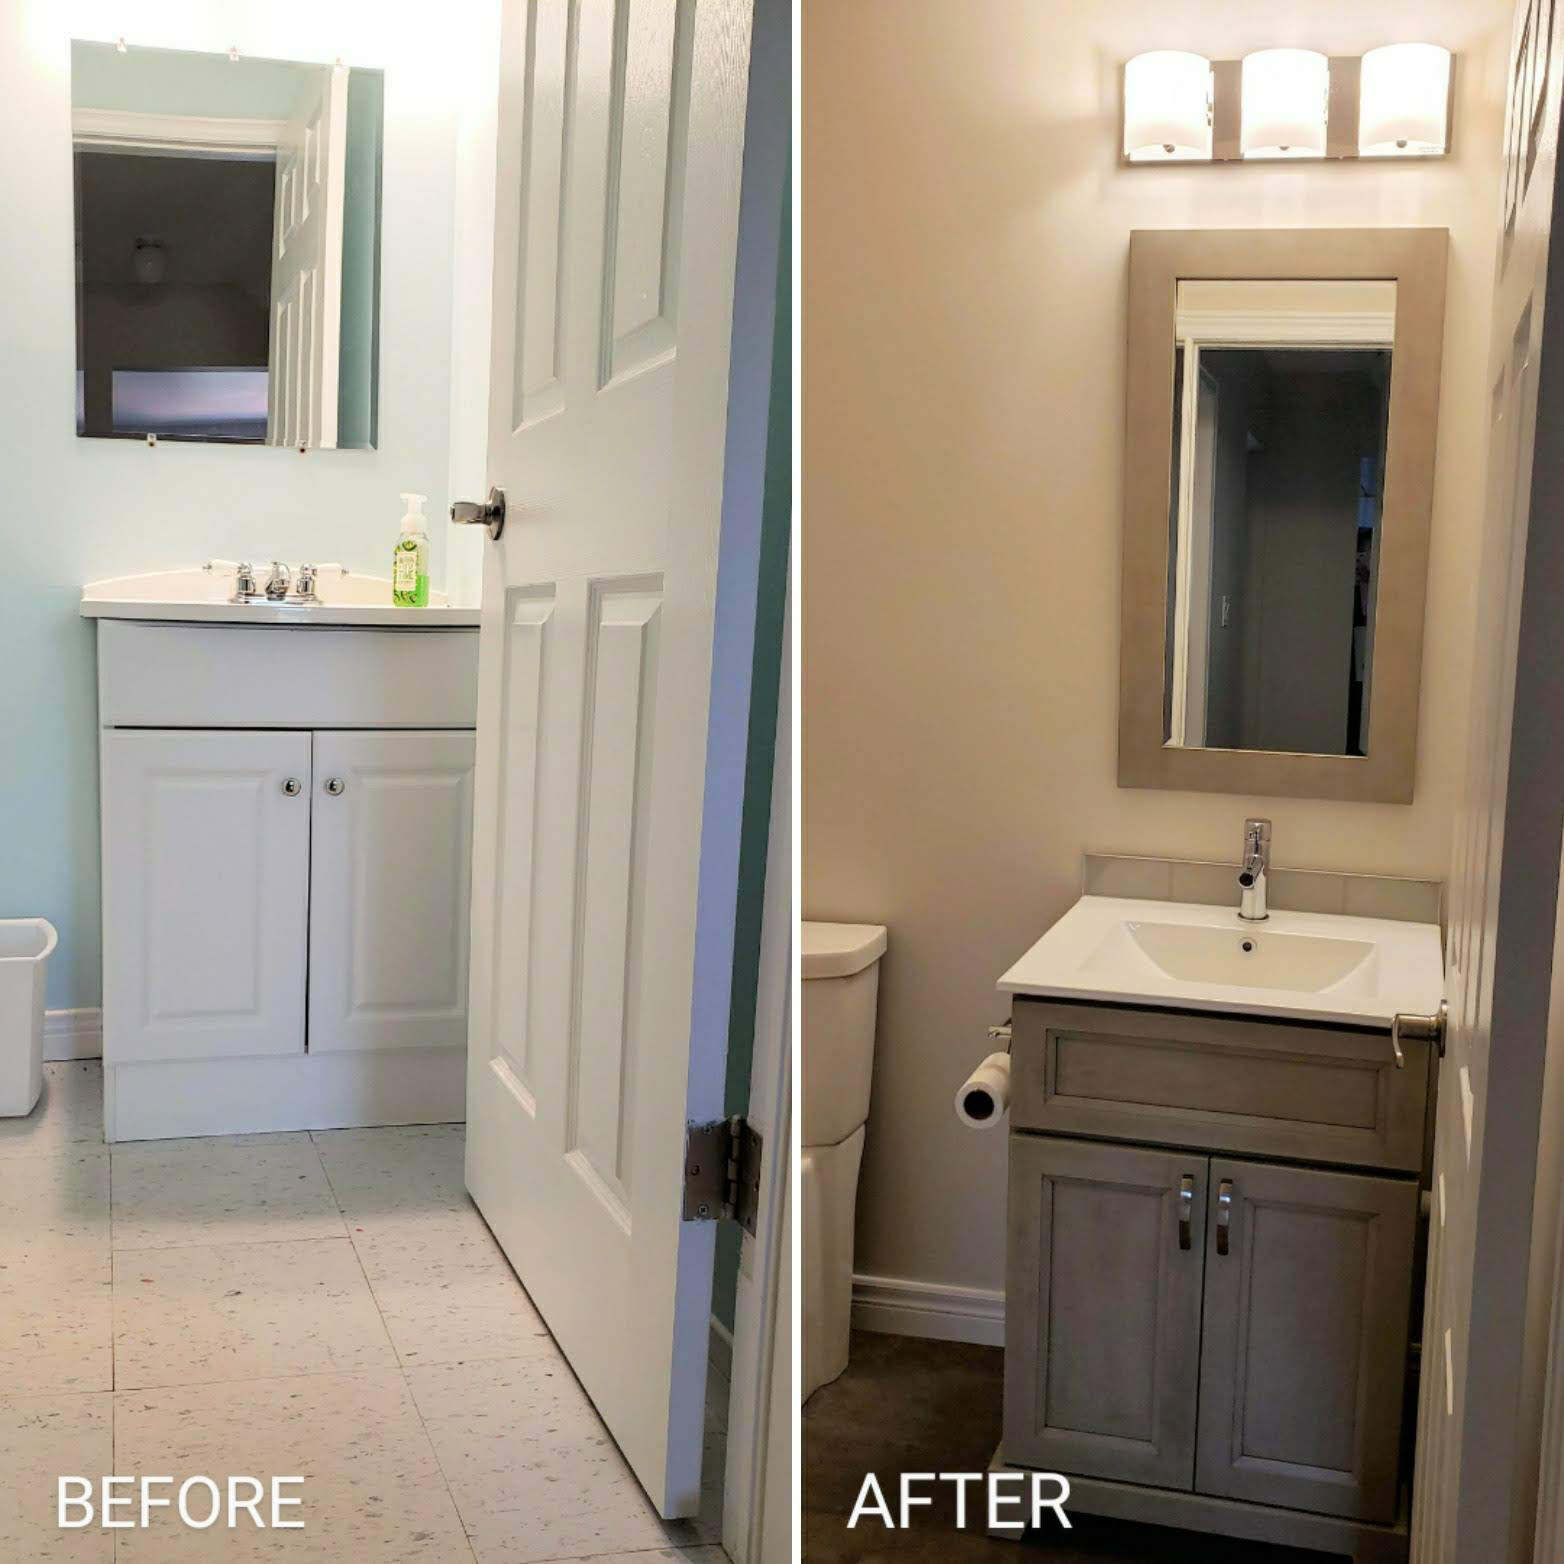 Part 1: Powder Bathroom Renovation